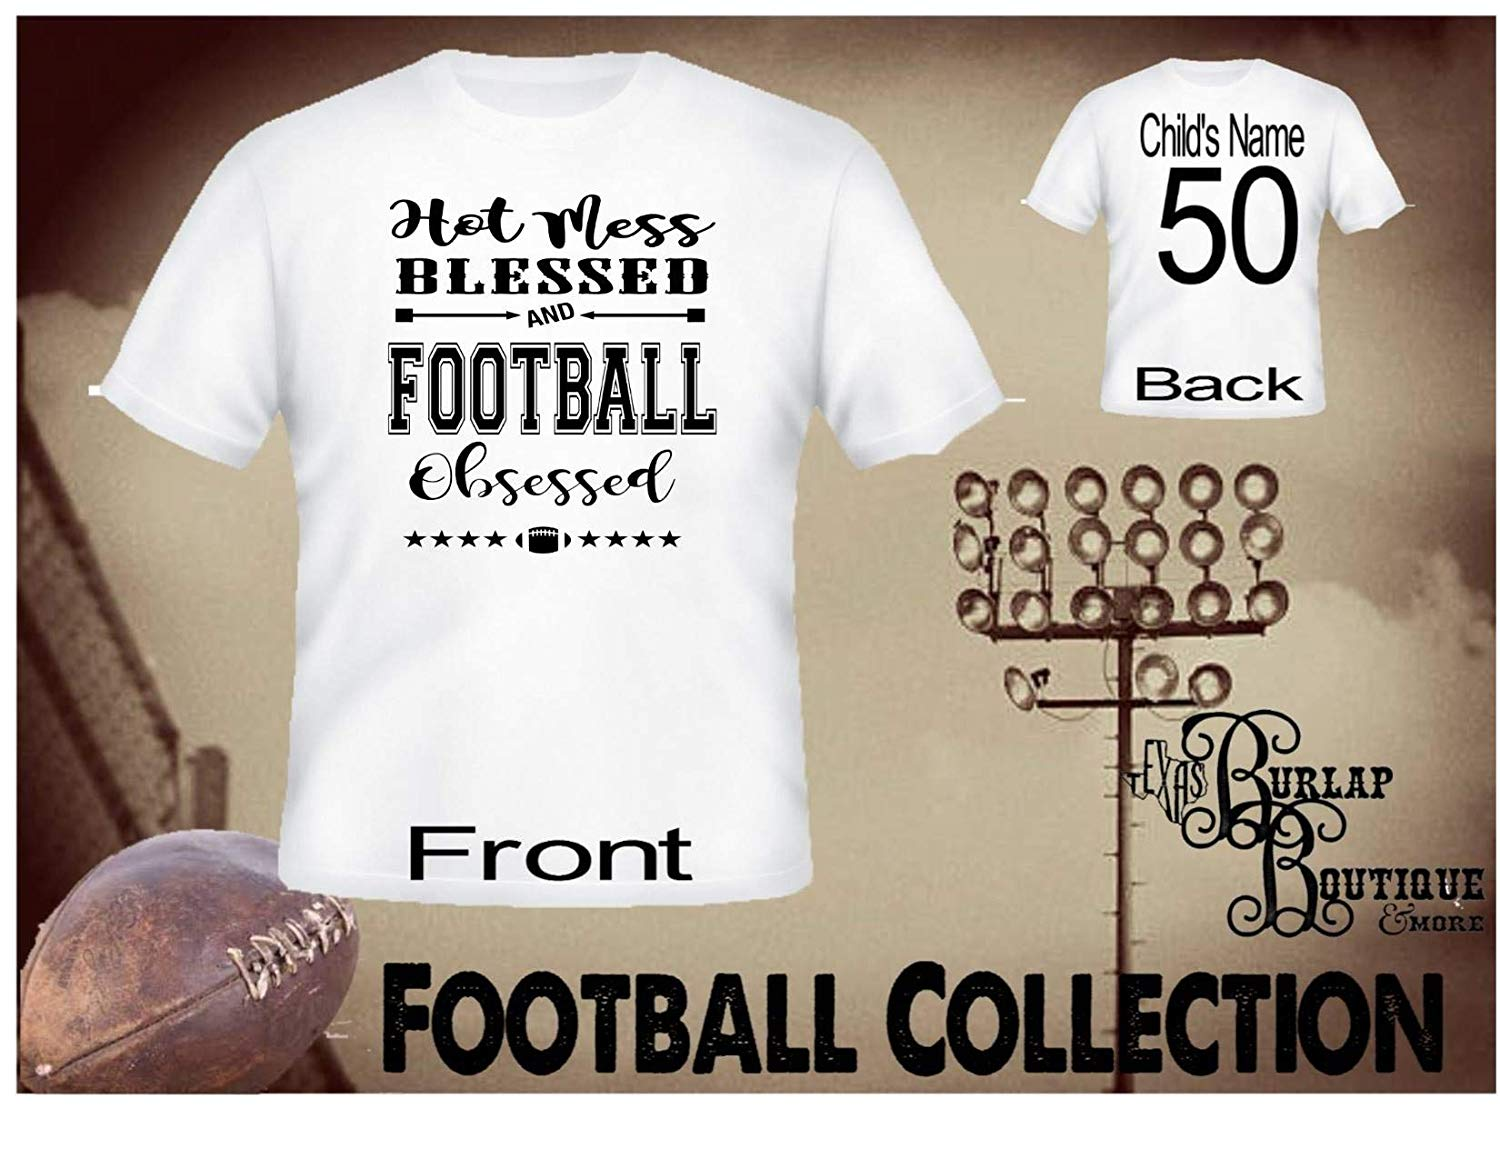 Handmade Personalized Football Shirt, Hot Mess, Blessed, Football Obsessed, Football Quotes, Kids, Girls, Adult, Sizes XS - 3XL Several colors